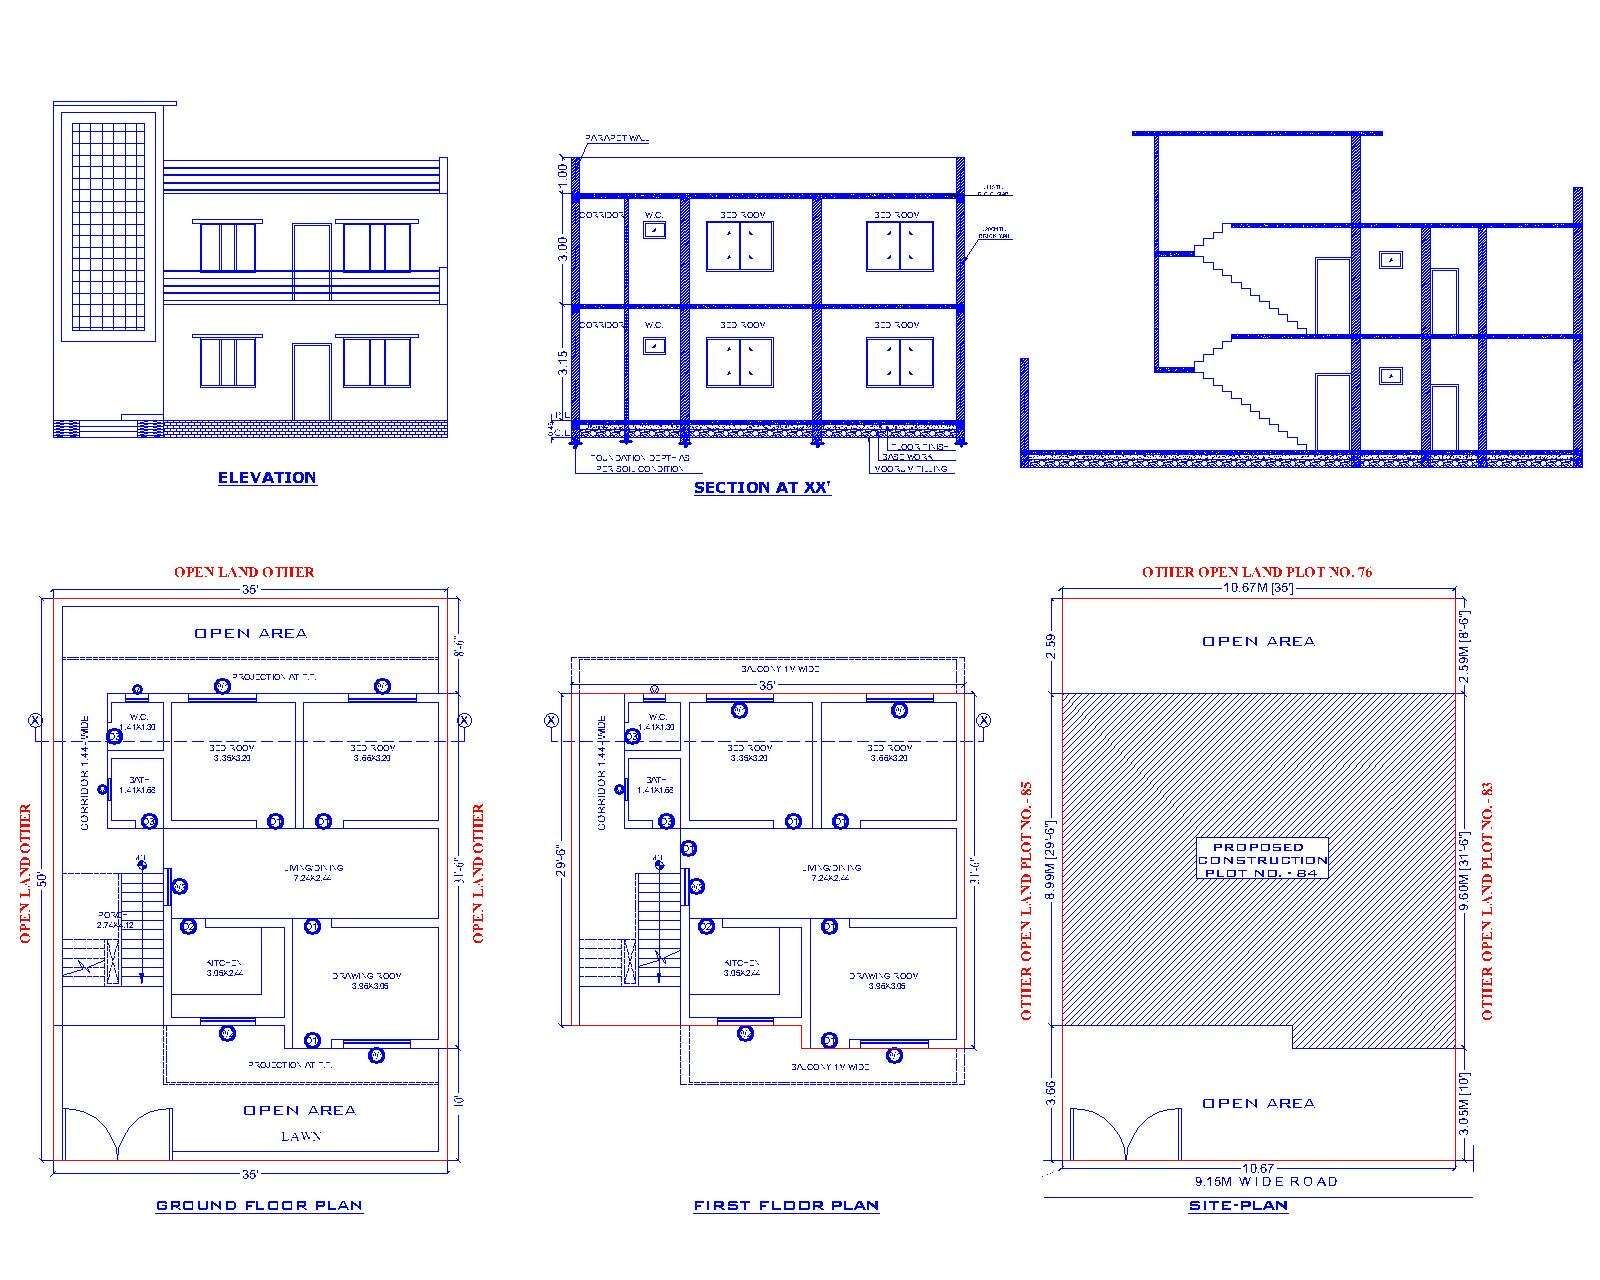 Submission Residential Plan And Elevation Design Dwg File The Architecture Layout Plan Of The Ground Floor P Ground Floor Plan How To Plan Layout Architecture